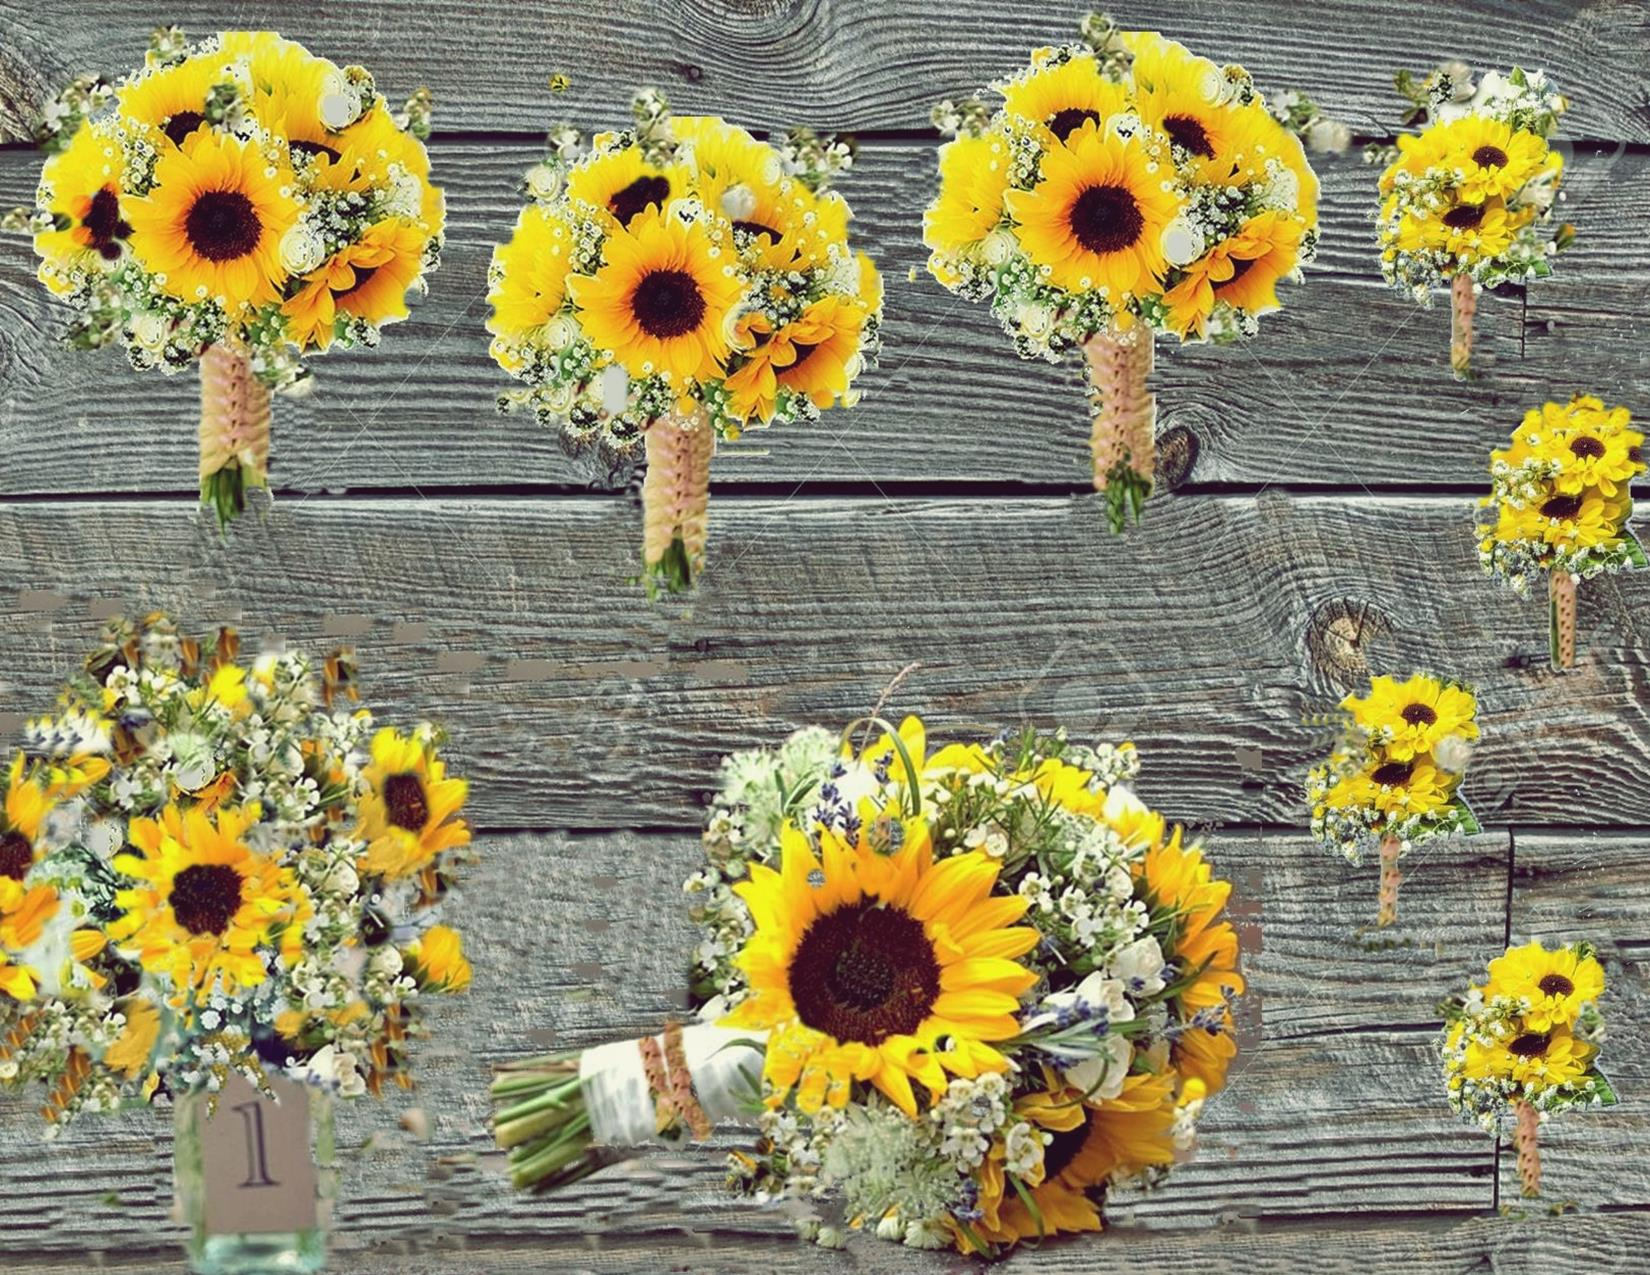 Sunflower wedding edited